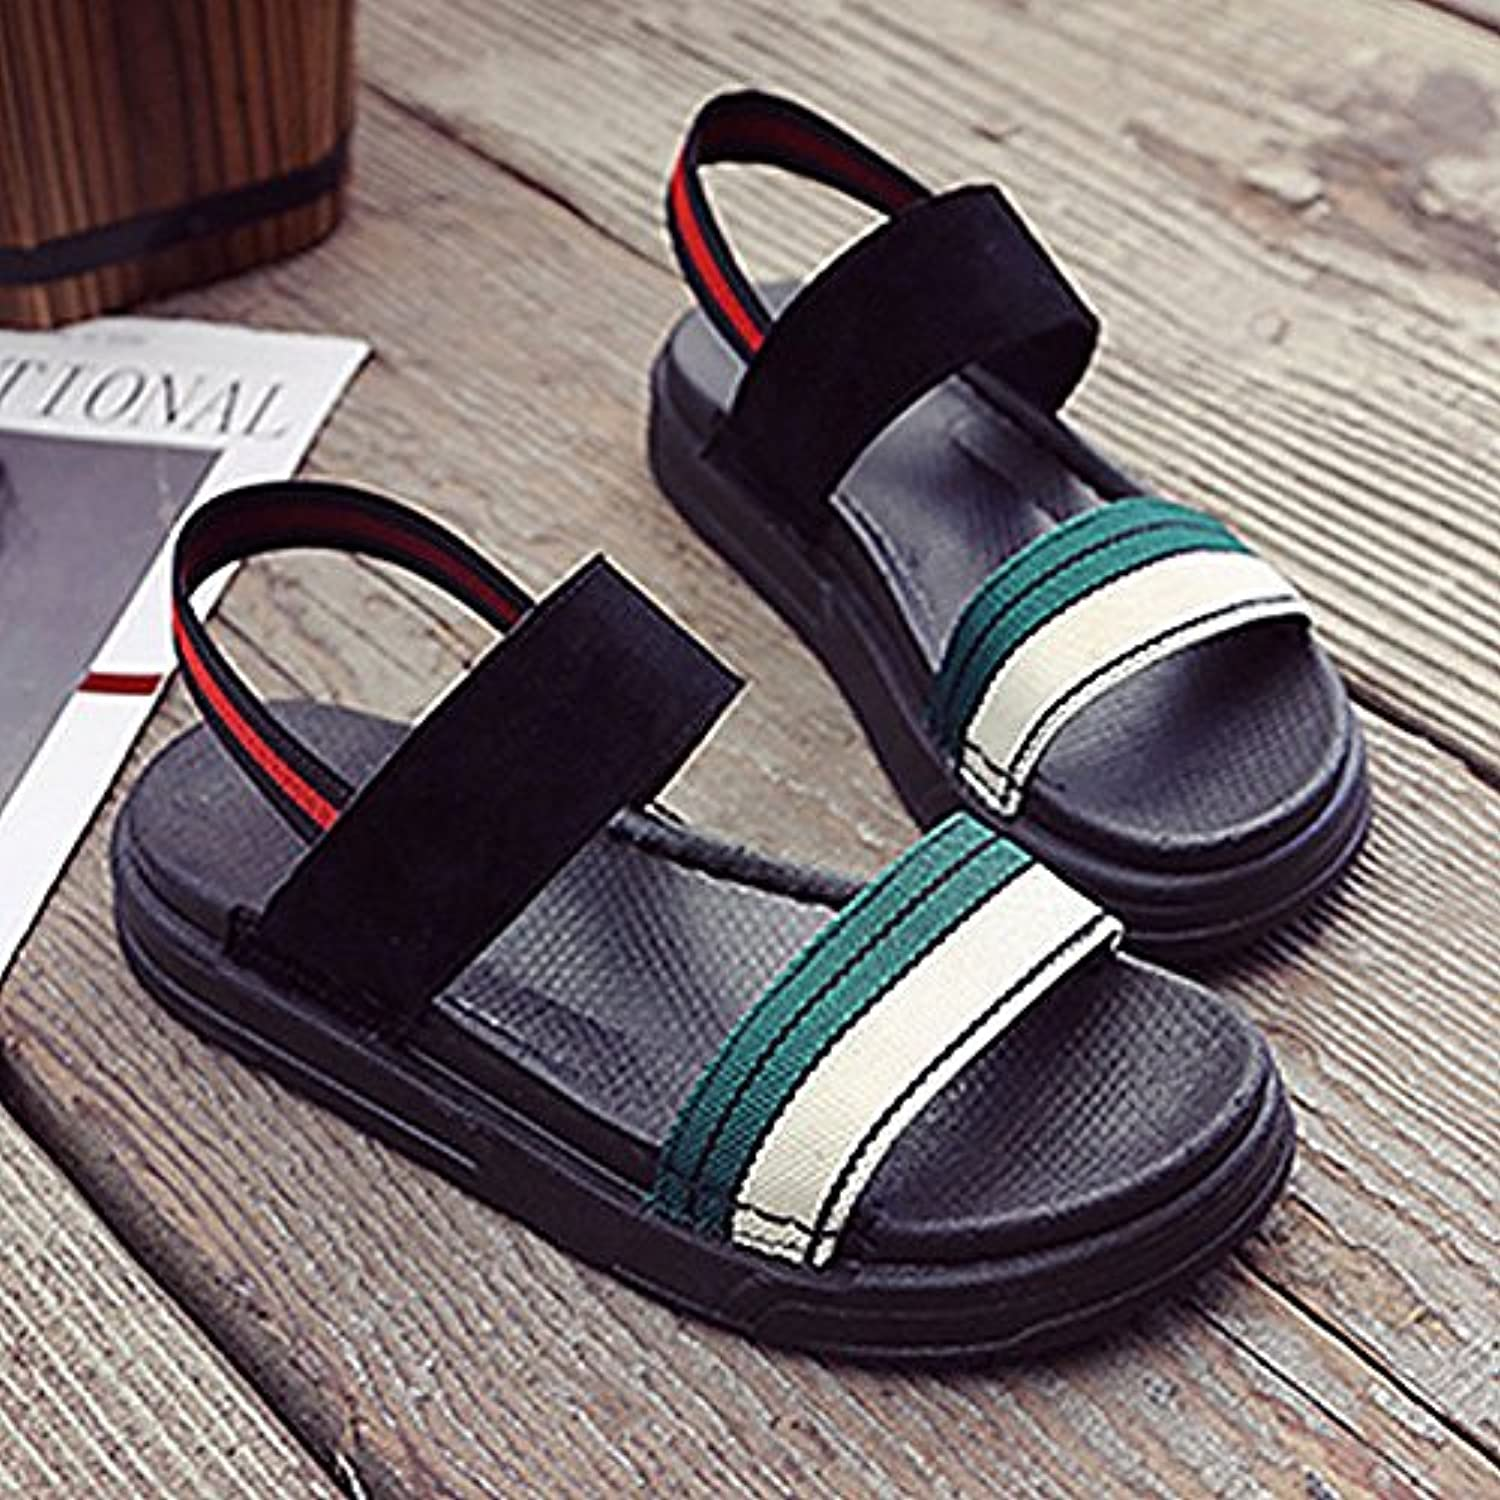 Women's shoes PU Summer Comfort Sandals Flat Heel for Casual Black Red Green